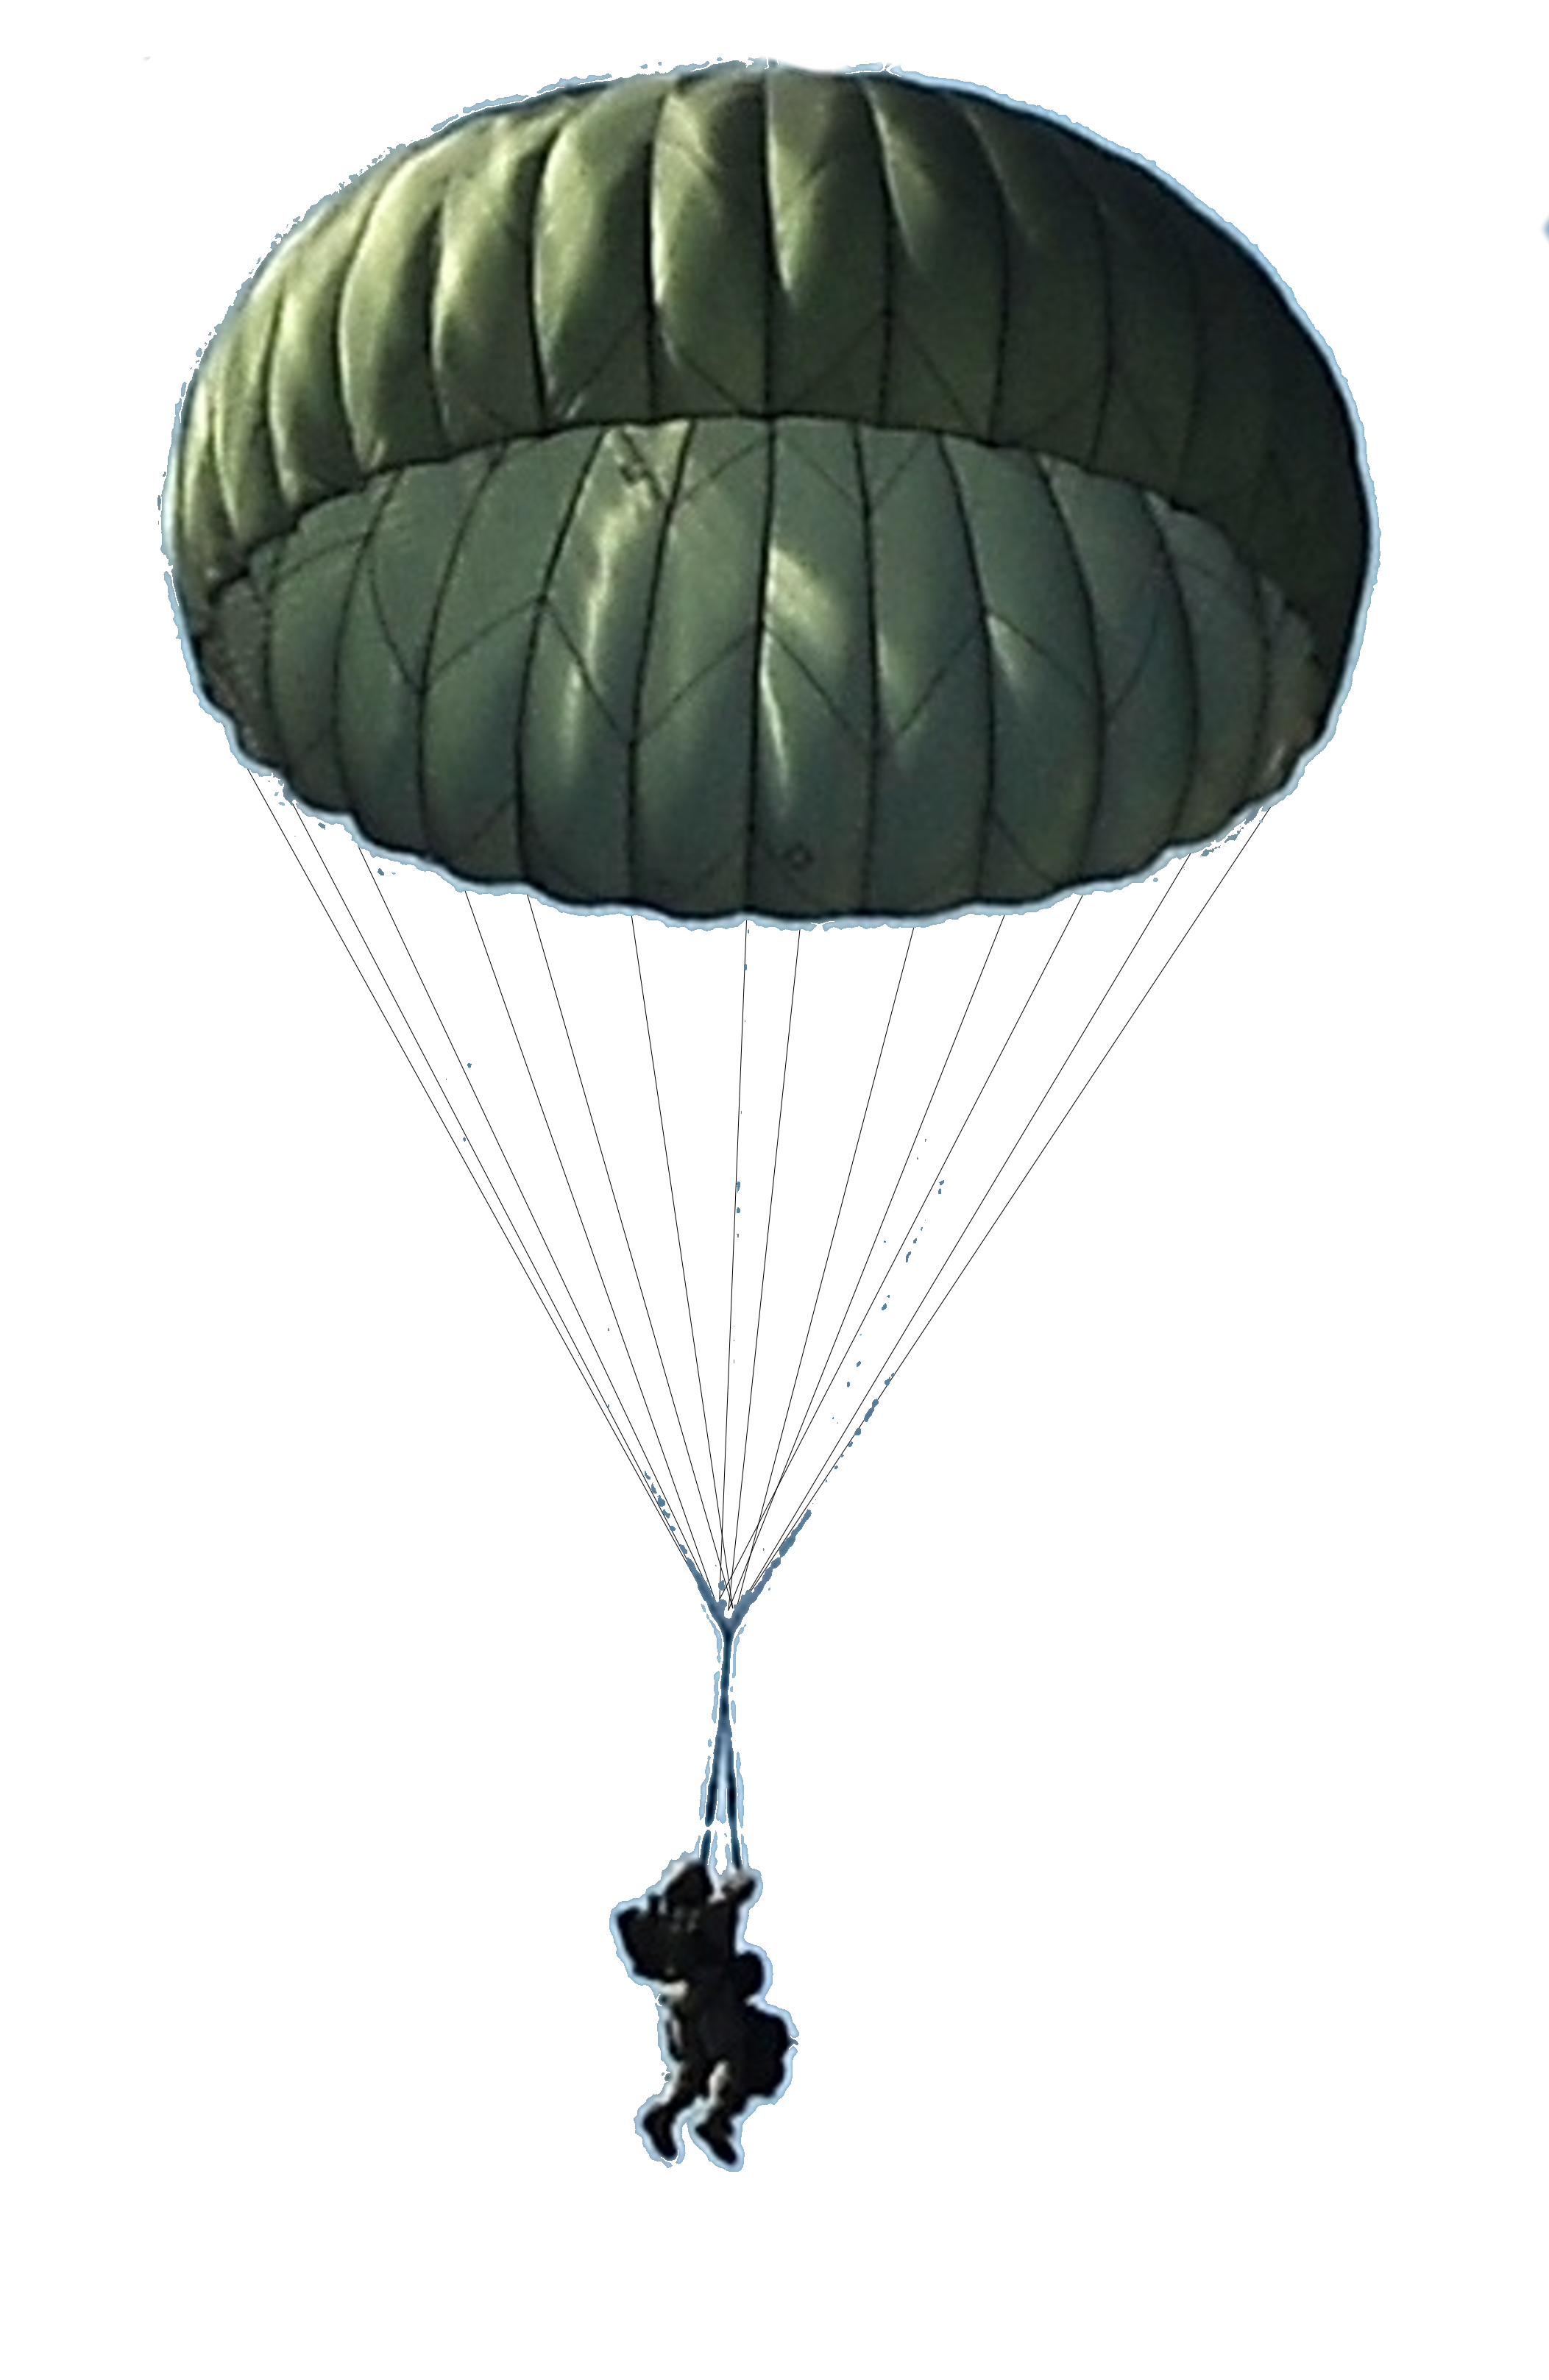 image download Pin by dalimil rajlich. Army parachute clipart